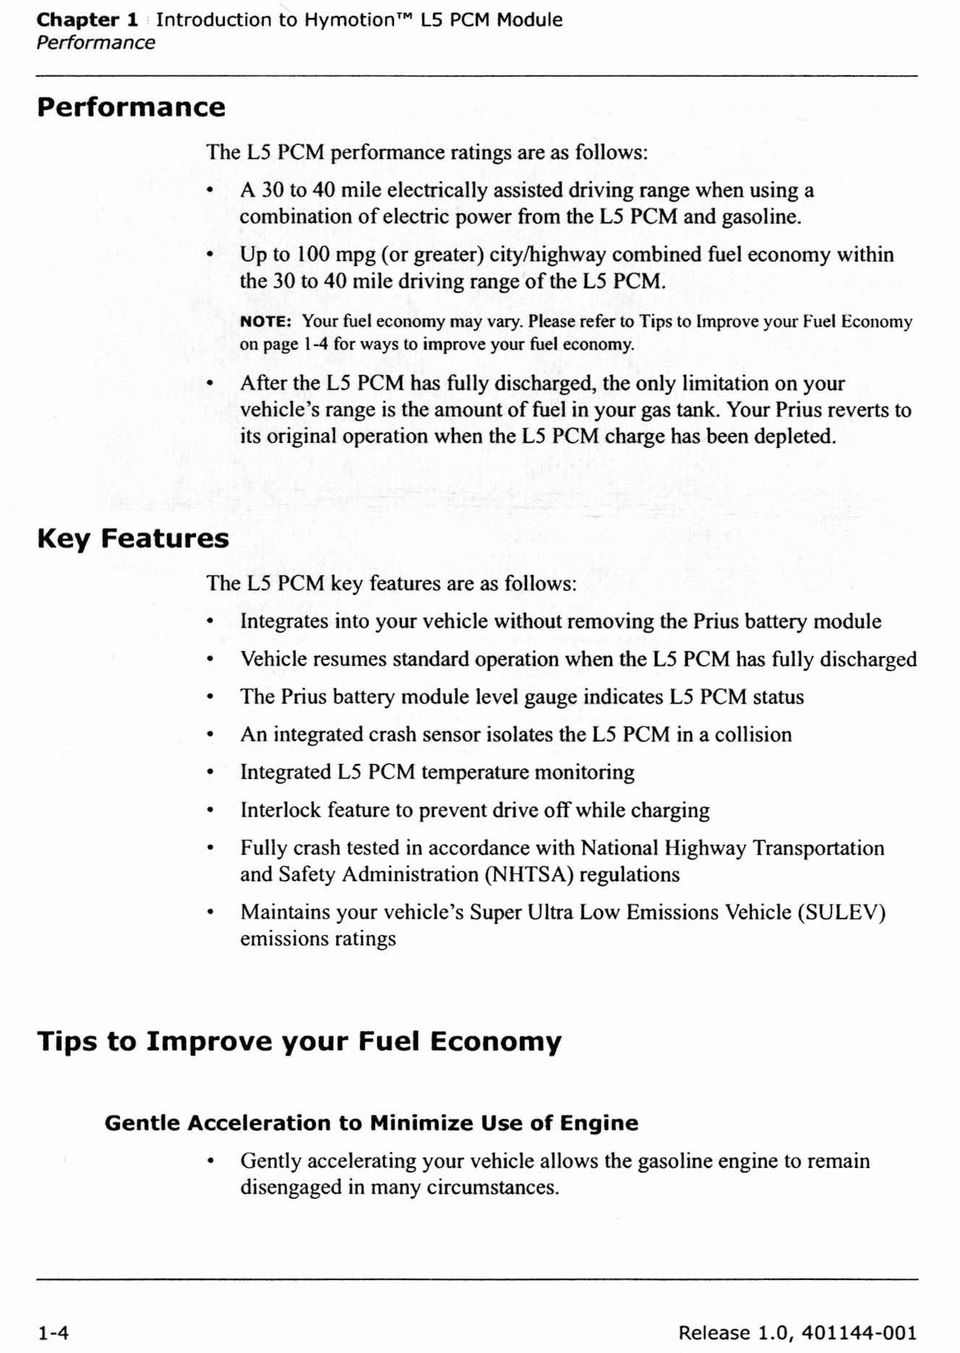 Please refer to Tips to lmprove your Fuel Economy on page 1-4 for ways